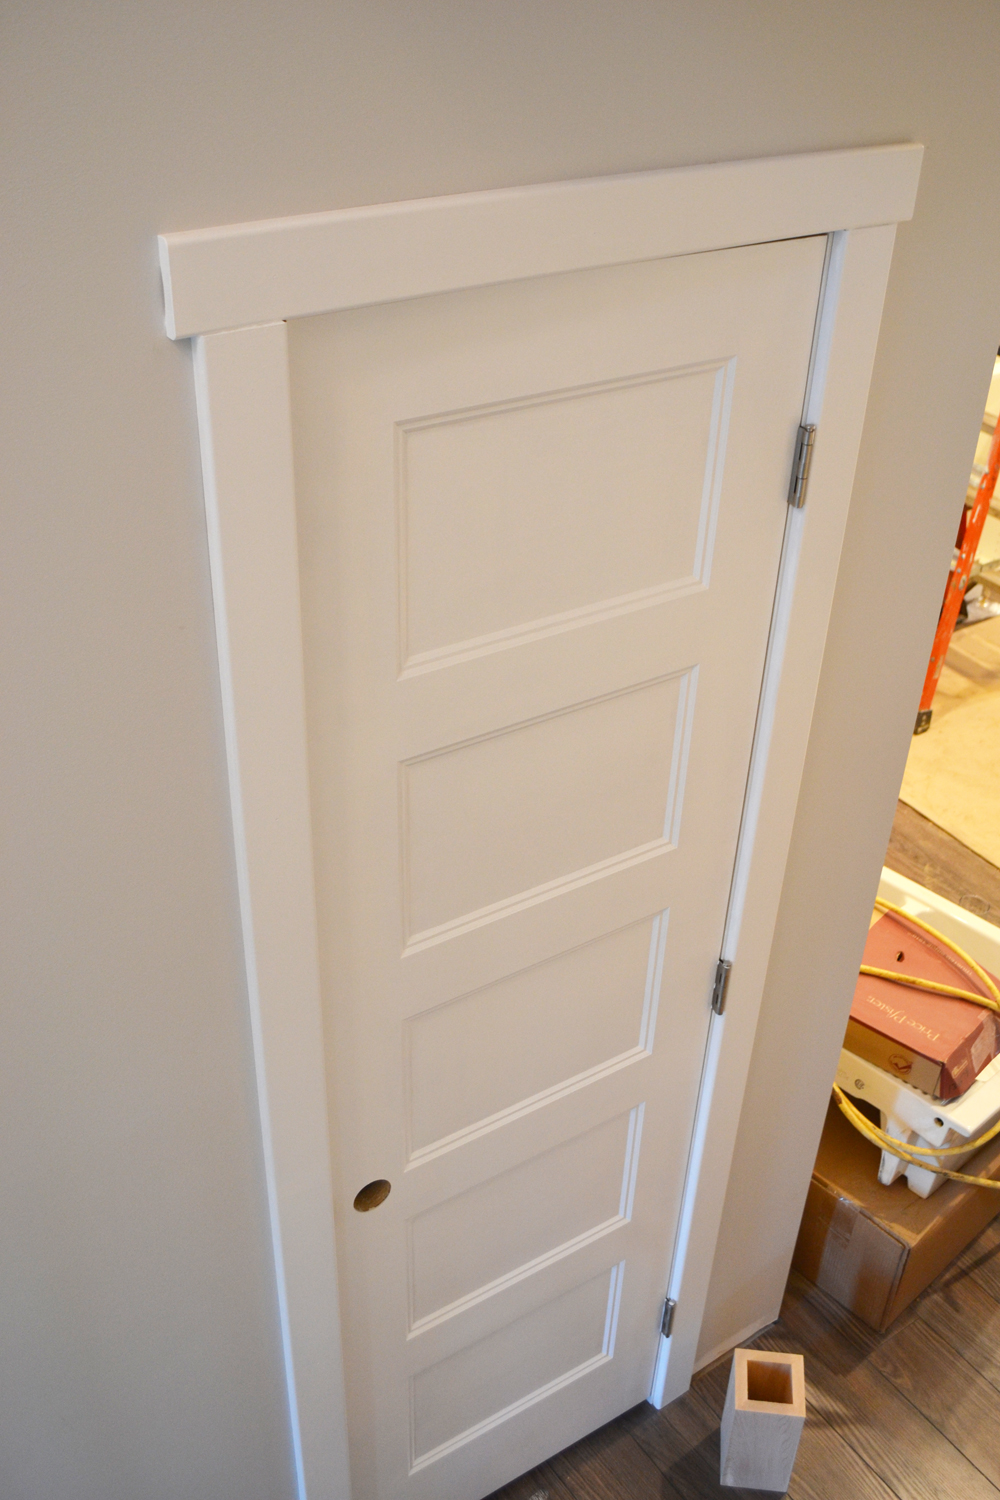 Shaker Style Doors from Windsor Plywood - The DIY Mommy & Painting Doors with a Streak-Free Finish (+ Where We Found Our ...